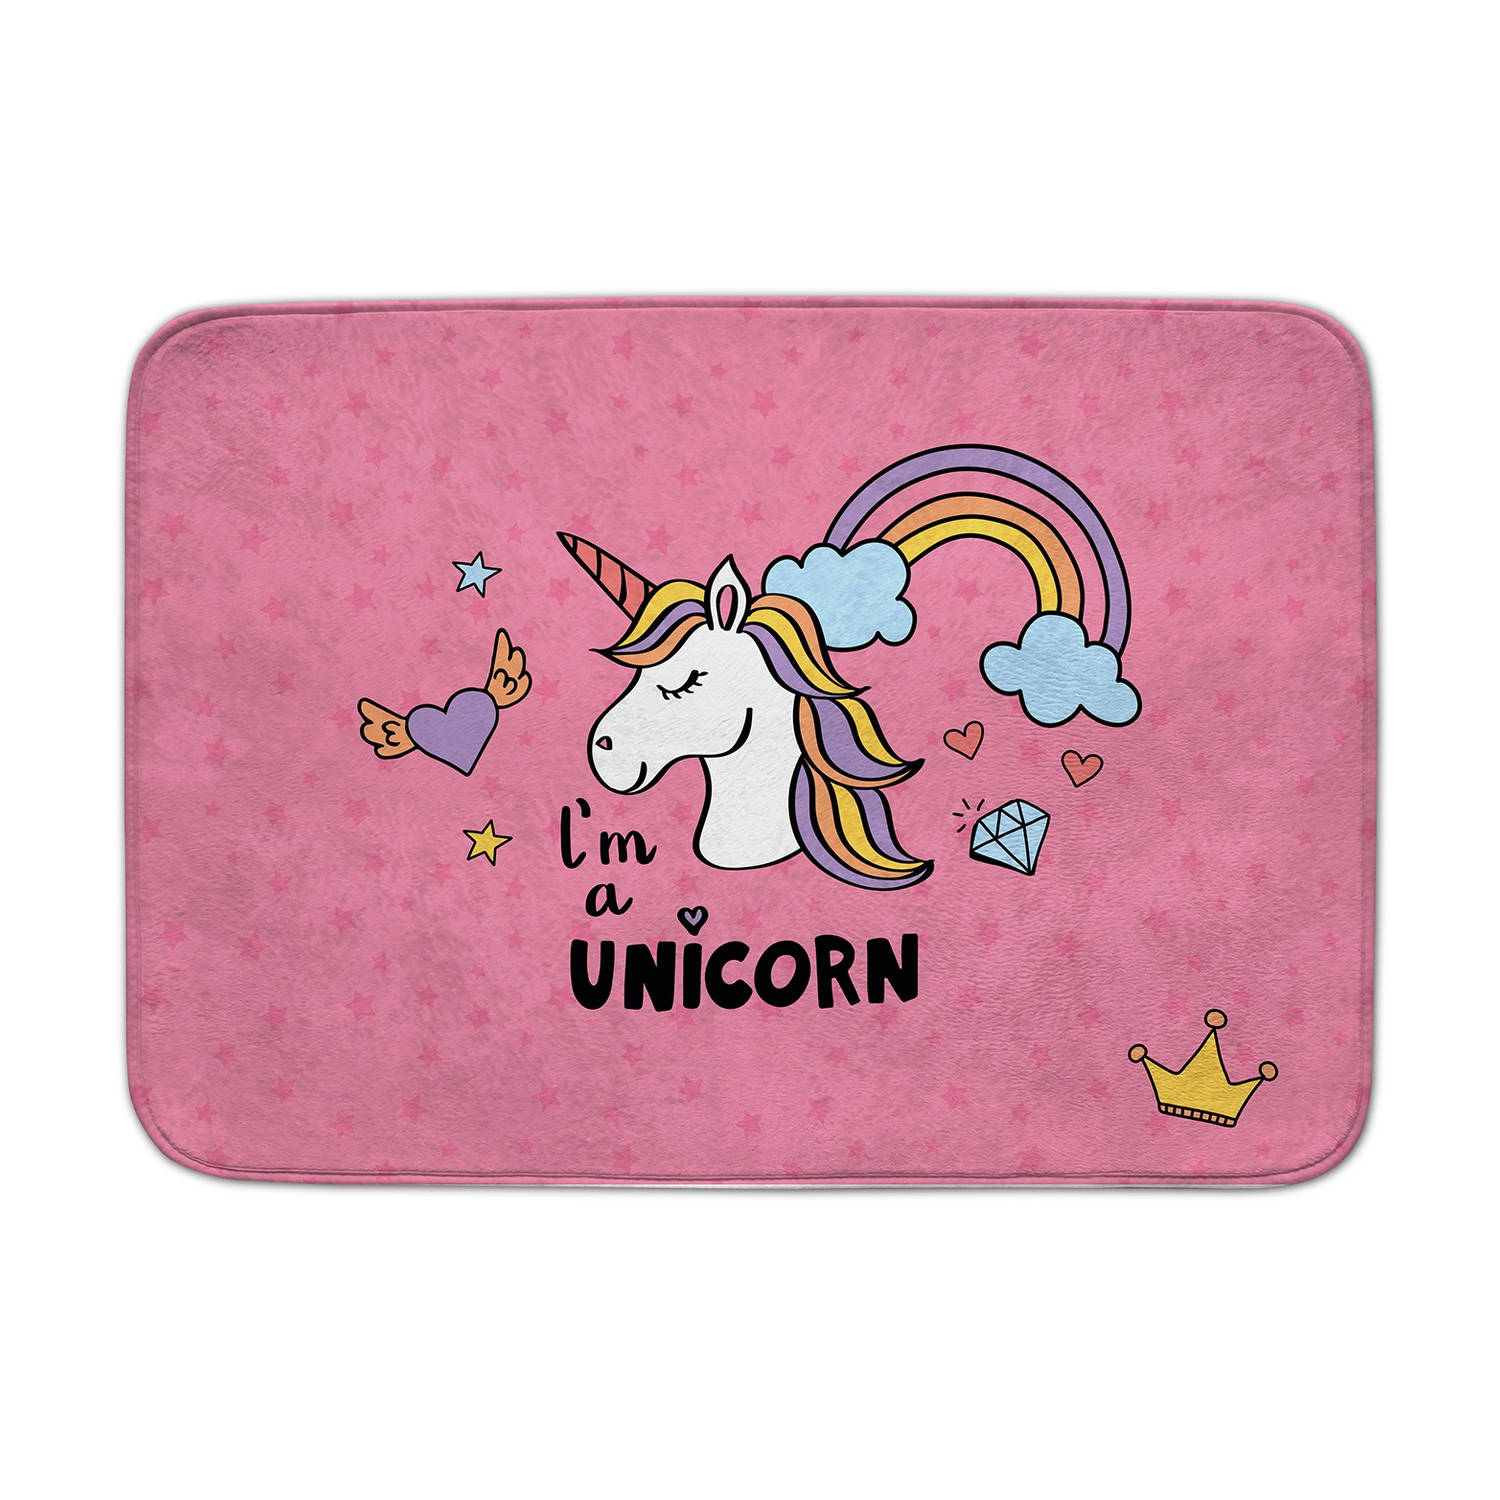 House of Kids vloerkleed I'm a unicorn 100 x 150 cm roze